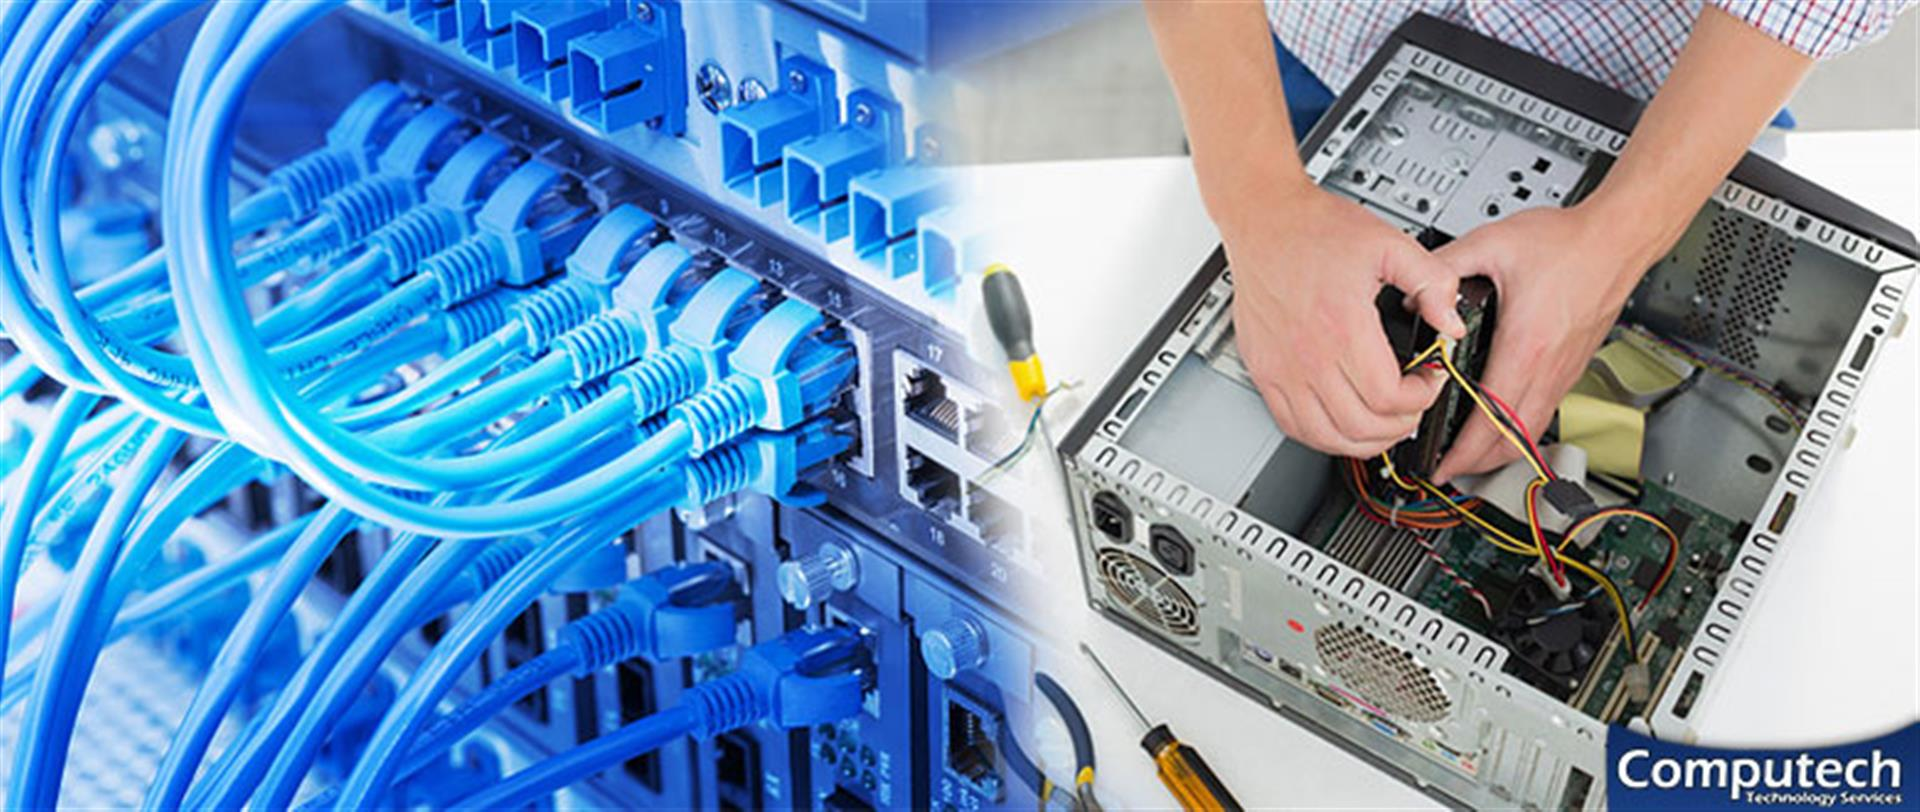 Alamo Georgia On Site Computer & Printer Repairs, Networks, Voice & Data Cabling Services